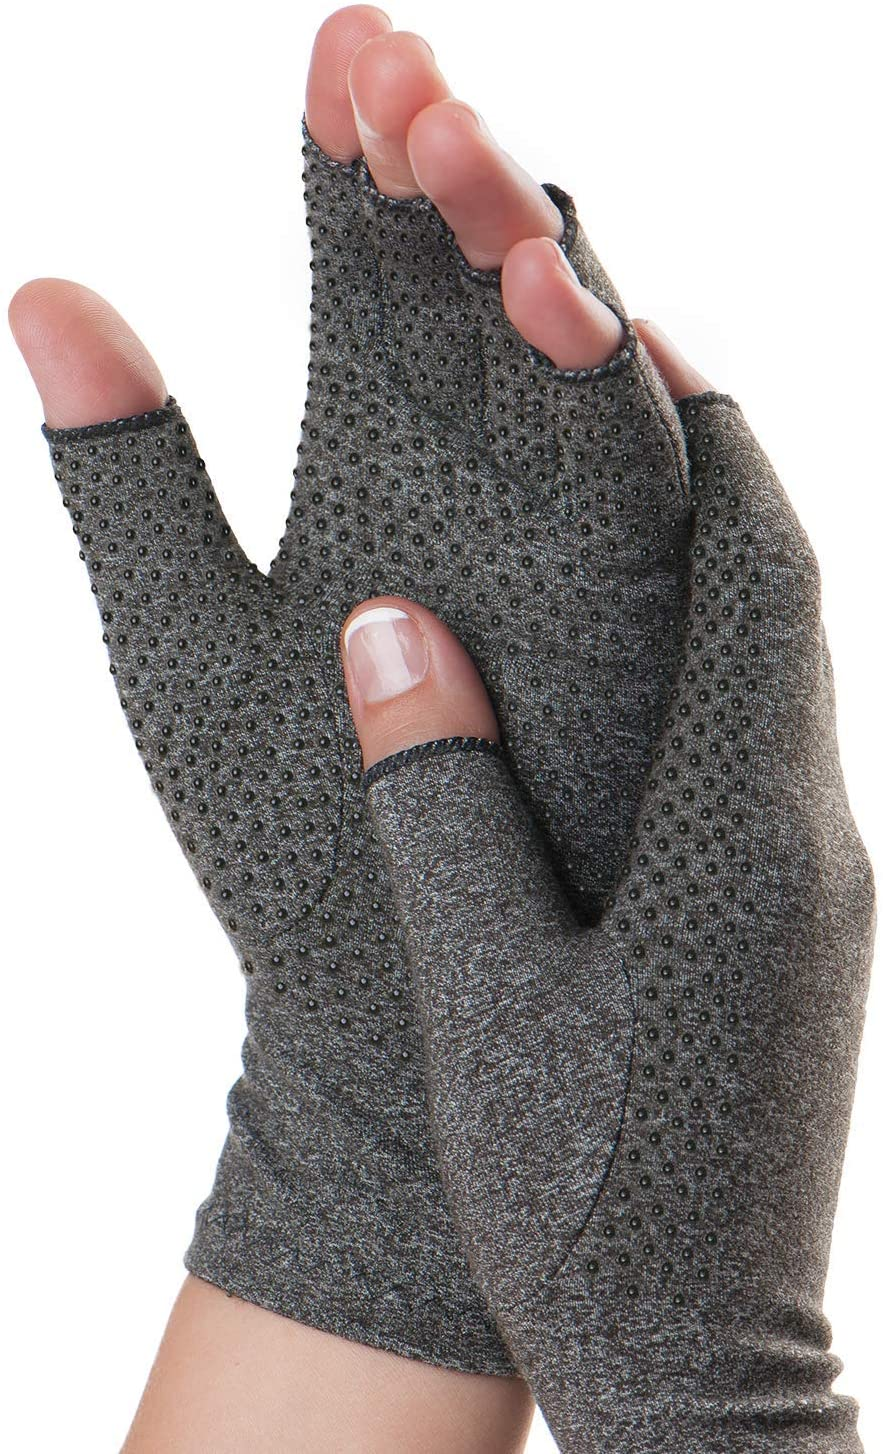 Dr. Frederick's Original Grippy Compression Gloves - 2 Pieces -- Pain Relief for Rheumatoid and Osteoarthritis Hand Pain Dr. Frederick's Original